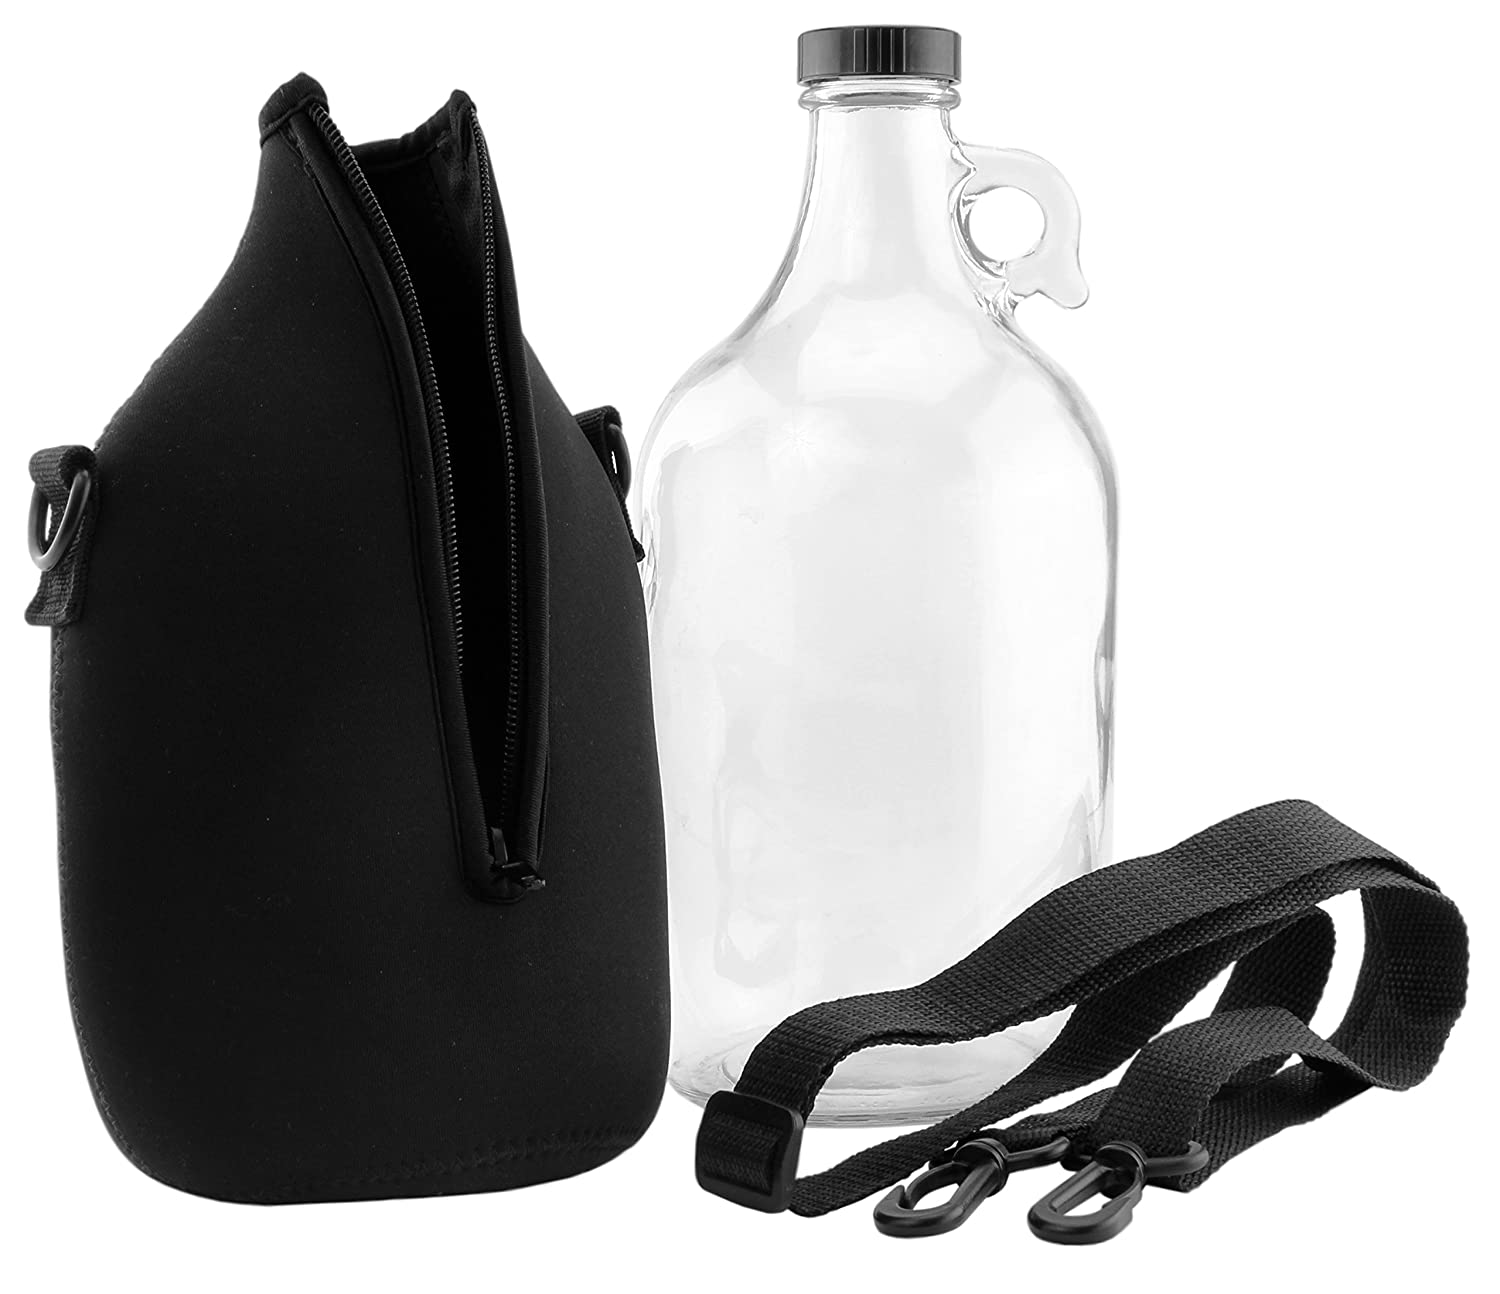 64-Ounce Clear Glass Kombucha & Beer Growler Jug w/ Black Neoprene Sleeve & Carrying Strap; (2-Piece Set w/ Half Gallon Jug & Carrying Sleeve) Cornucopia Brands